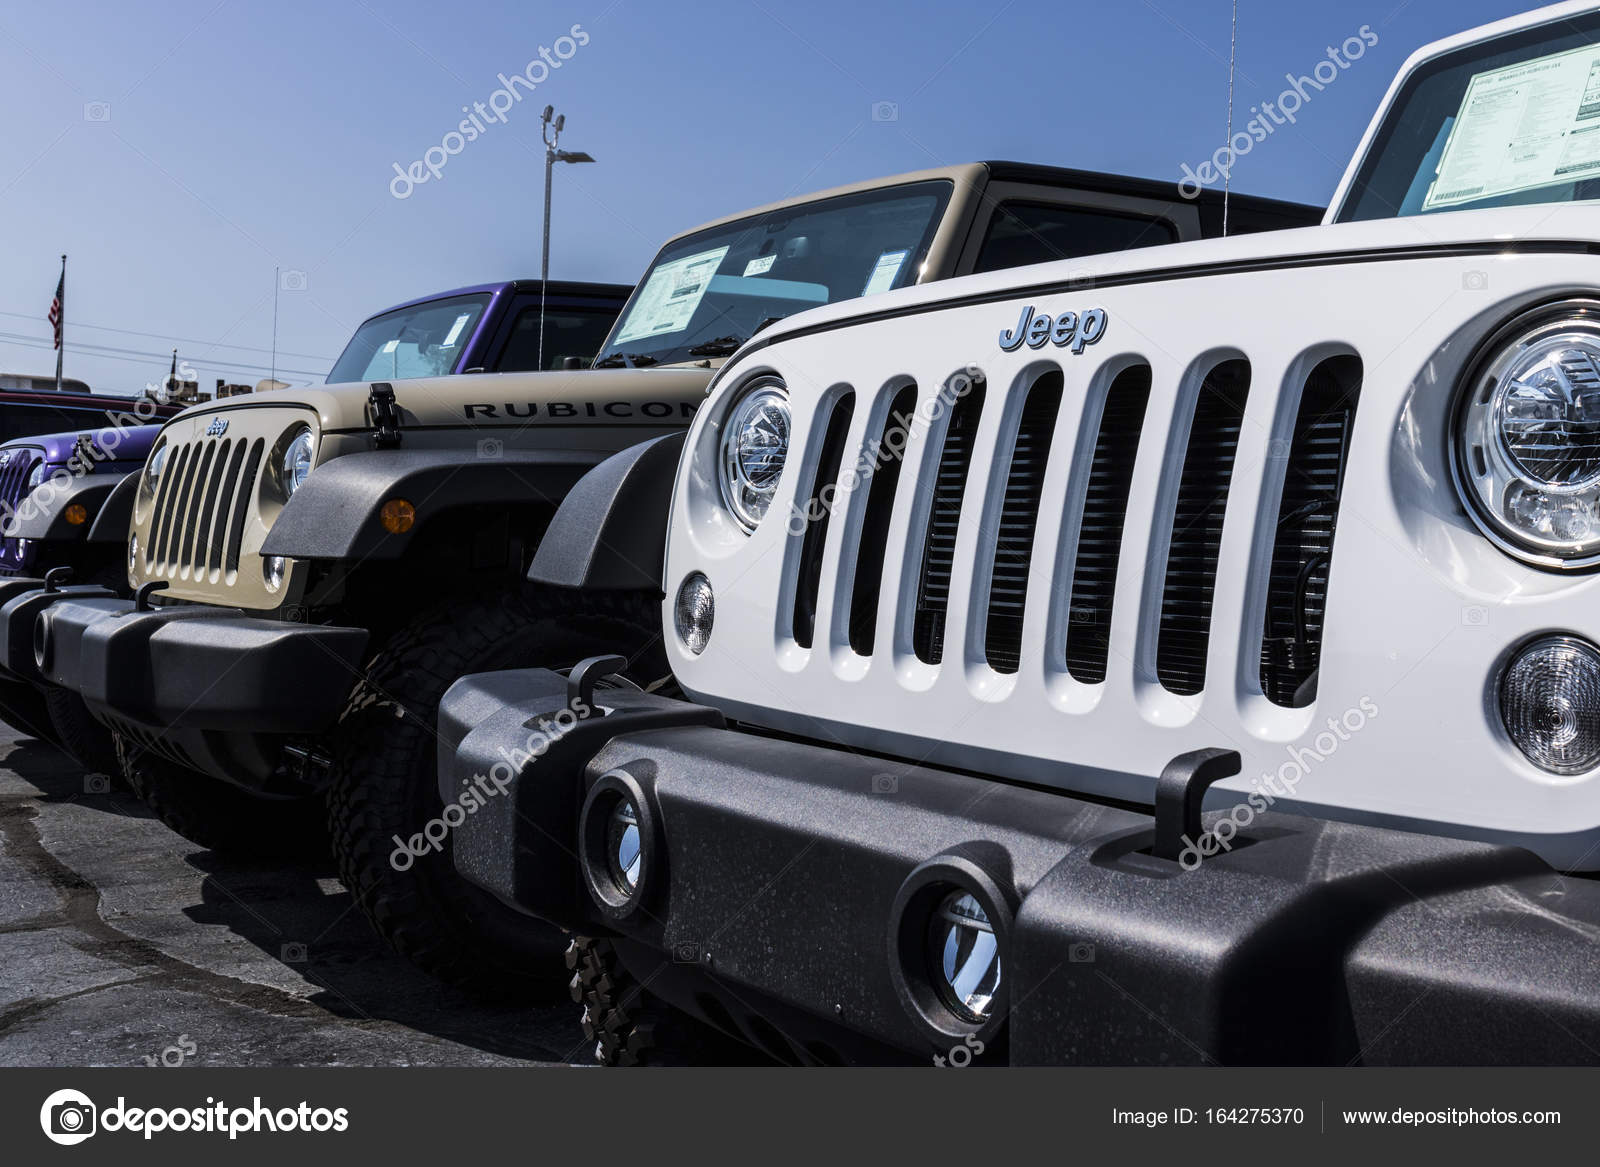 depositphotos fca company automobile photo noblesville chrysler parent the stock march dealership fiat dodge jeep automobiles of a is subsidiary circa